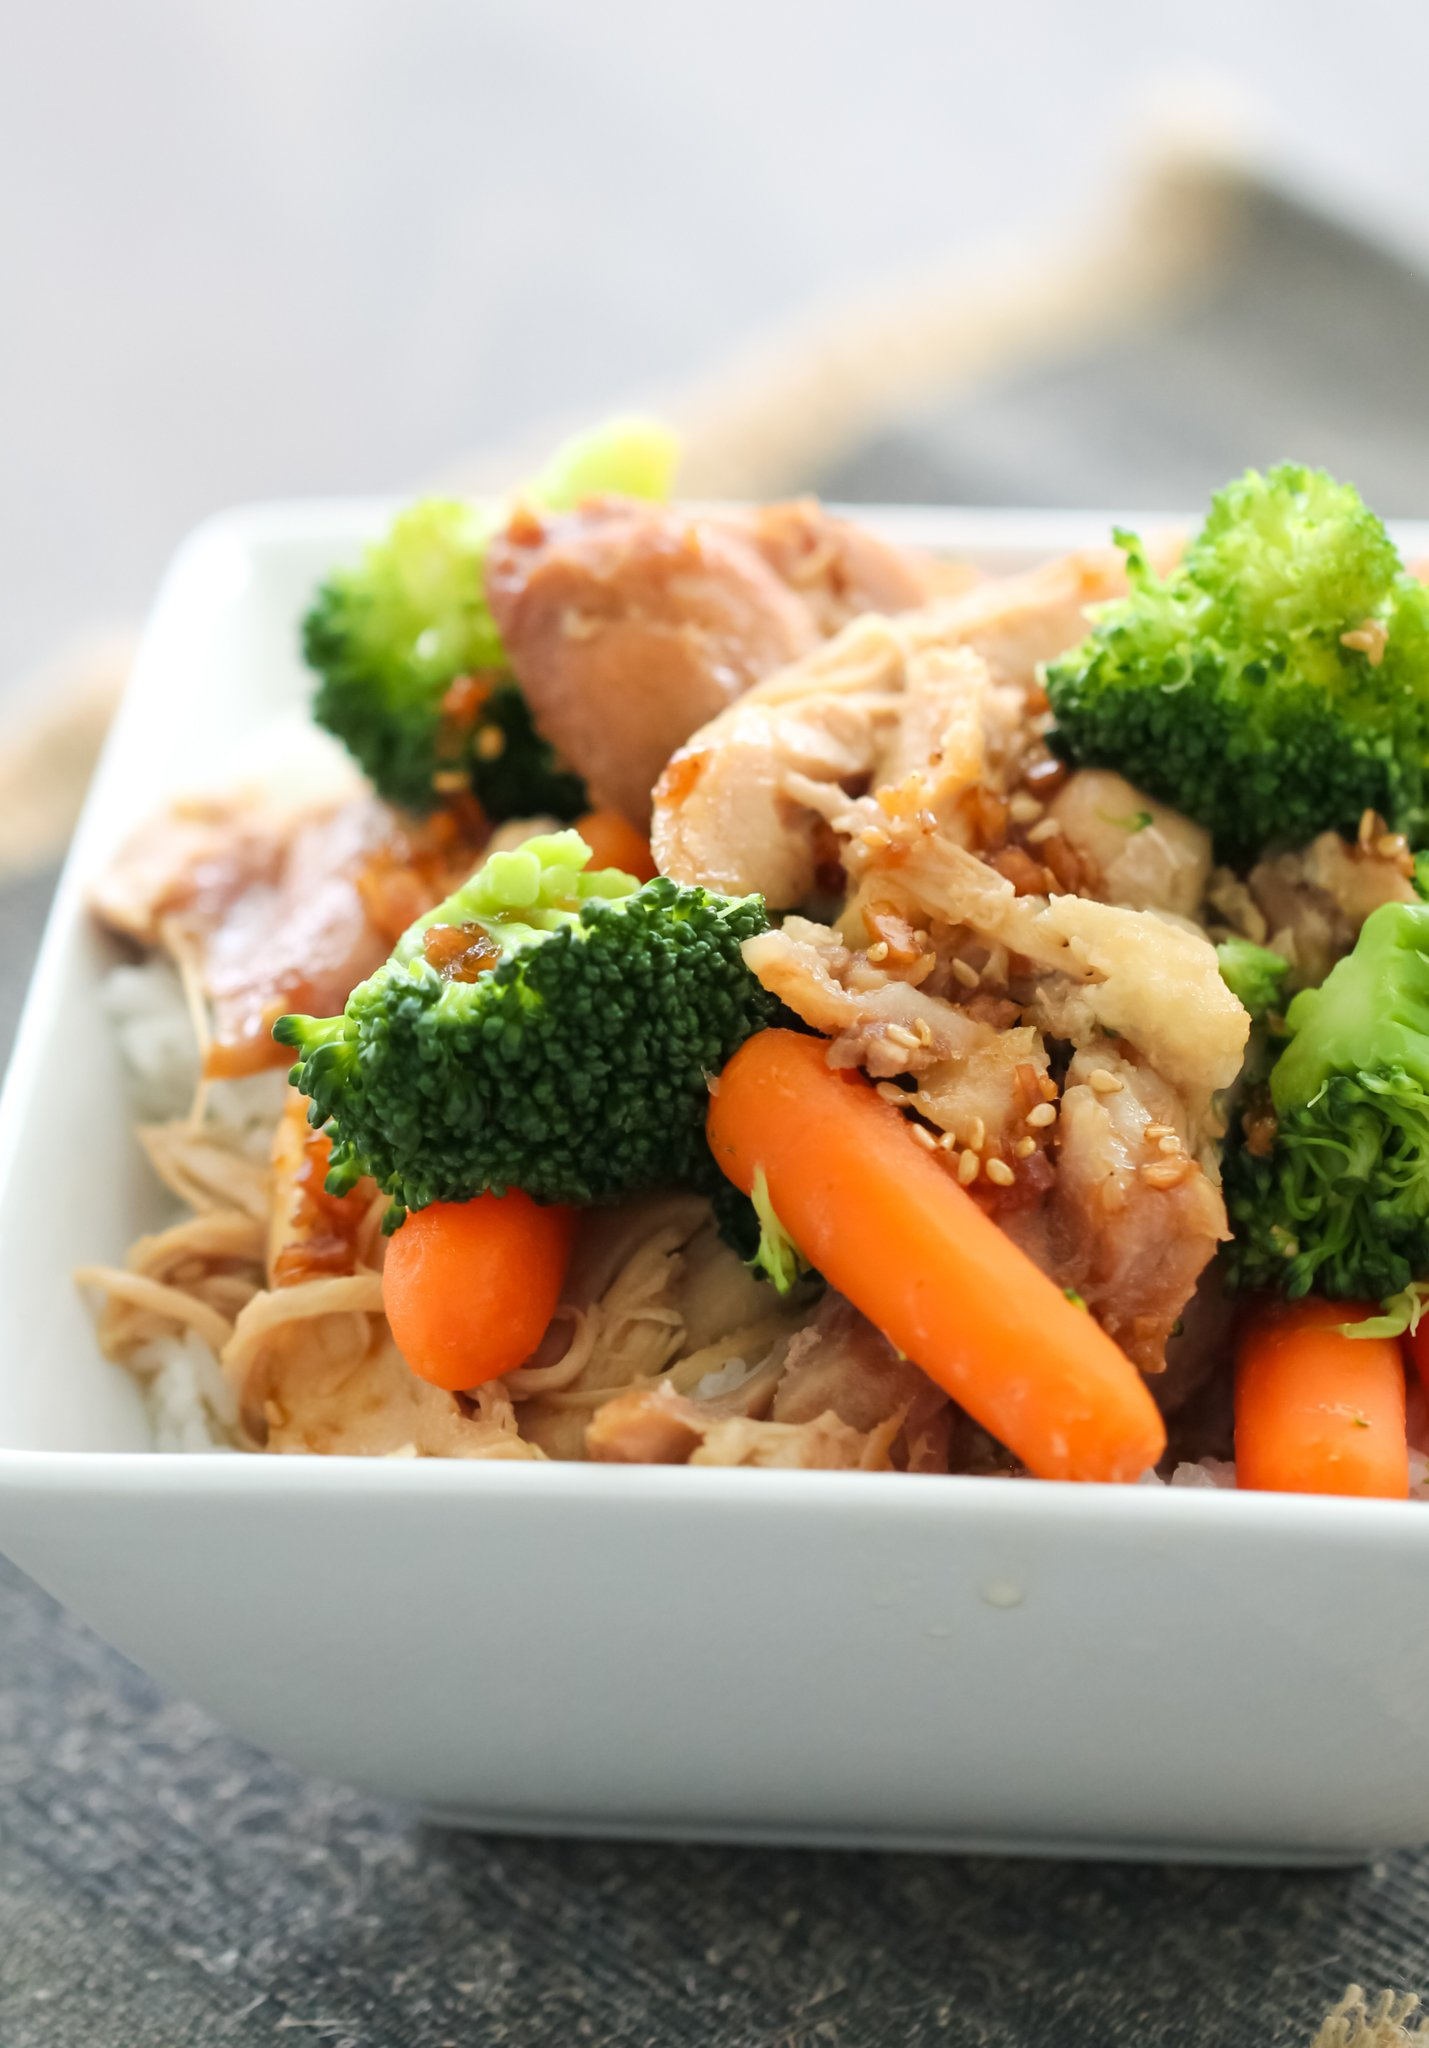 Slow Cooker Teriyaki Chicken in a white bowl with carrots and broccoli